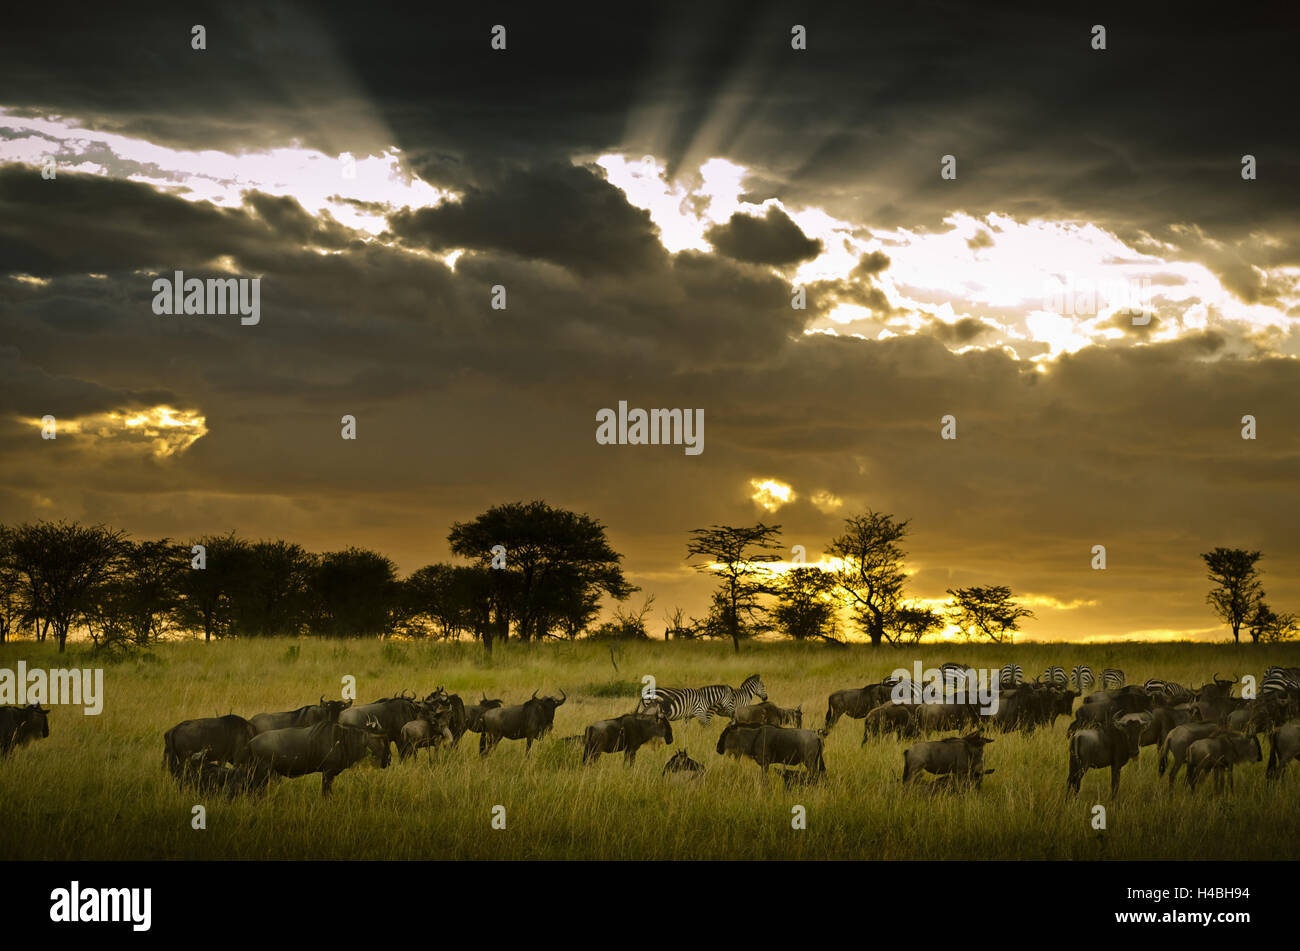 Africa, East Africa, Tanzania, Serengeti, animal world, gnus, zebras, - Stock Image